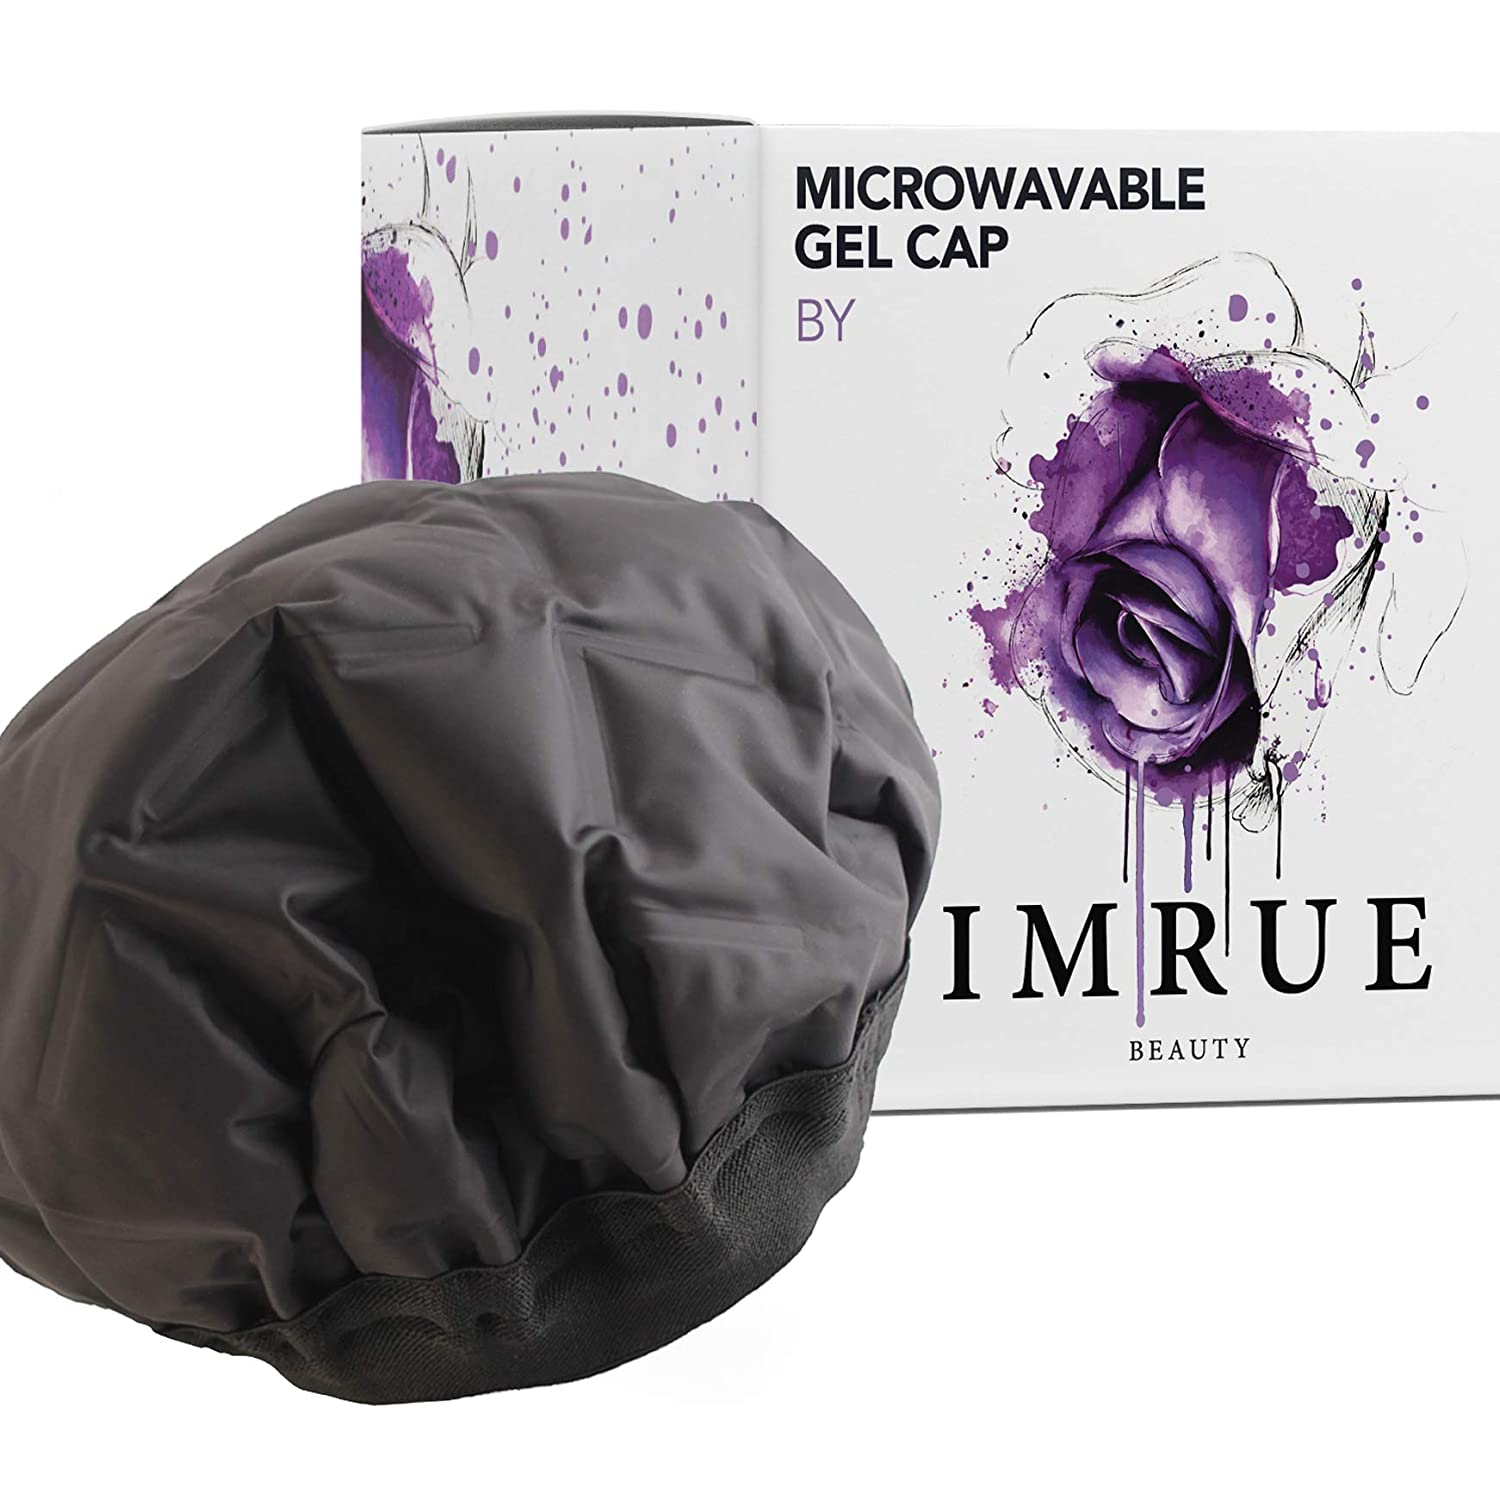 Cordless Heated Gel Cap/Hair Therapy Wrap/Used with Oil or Conditioner for Deep Penetrating Hair and Scalp Treatments